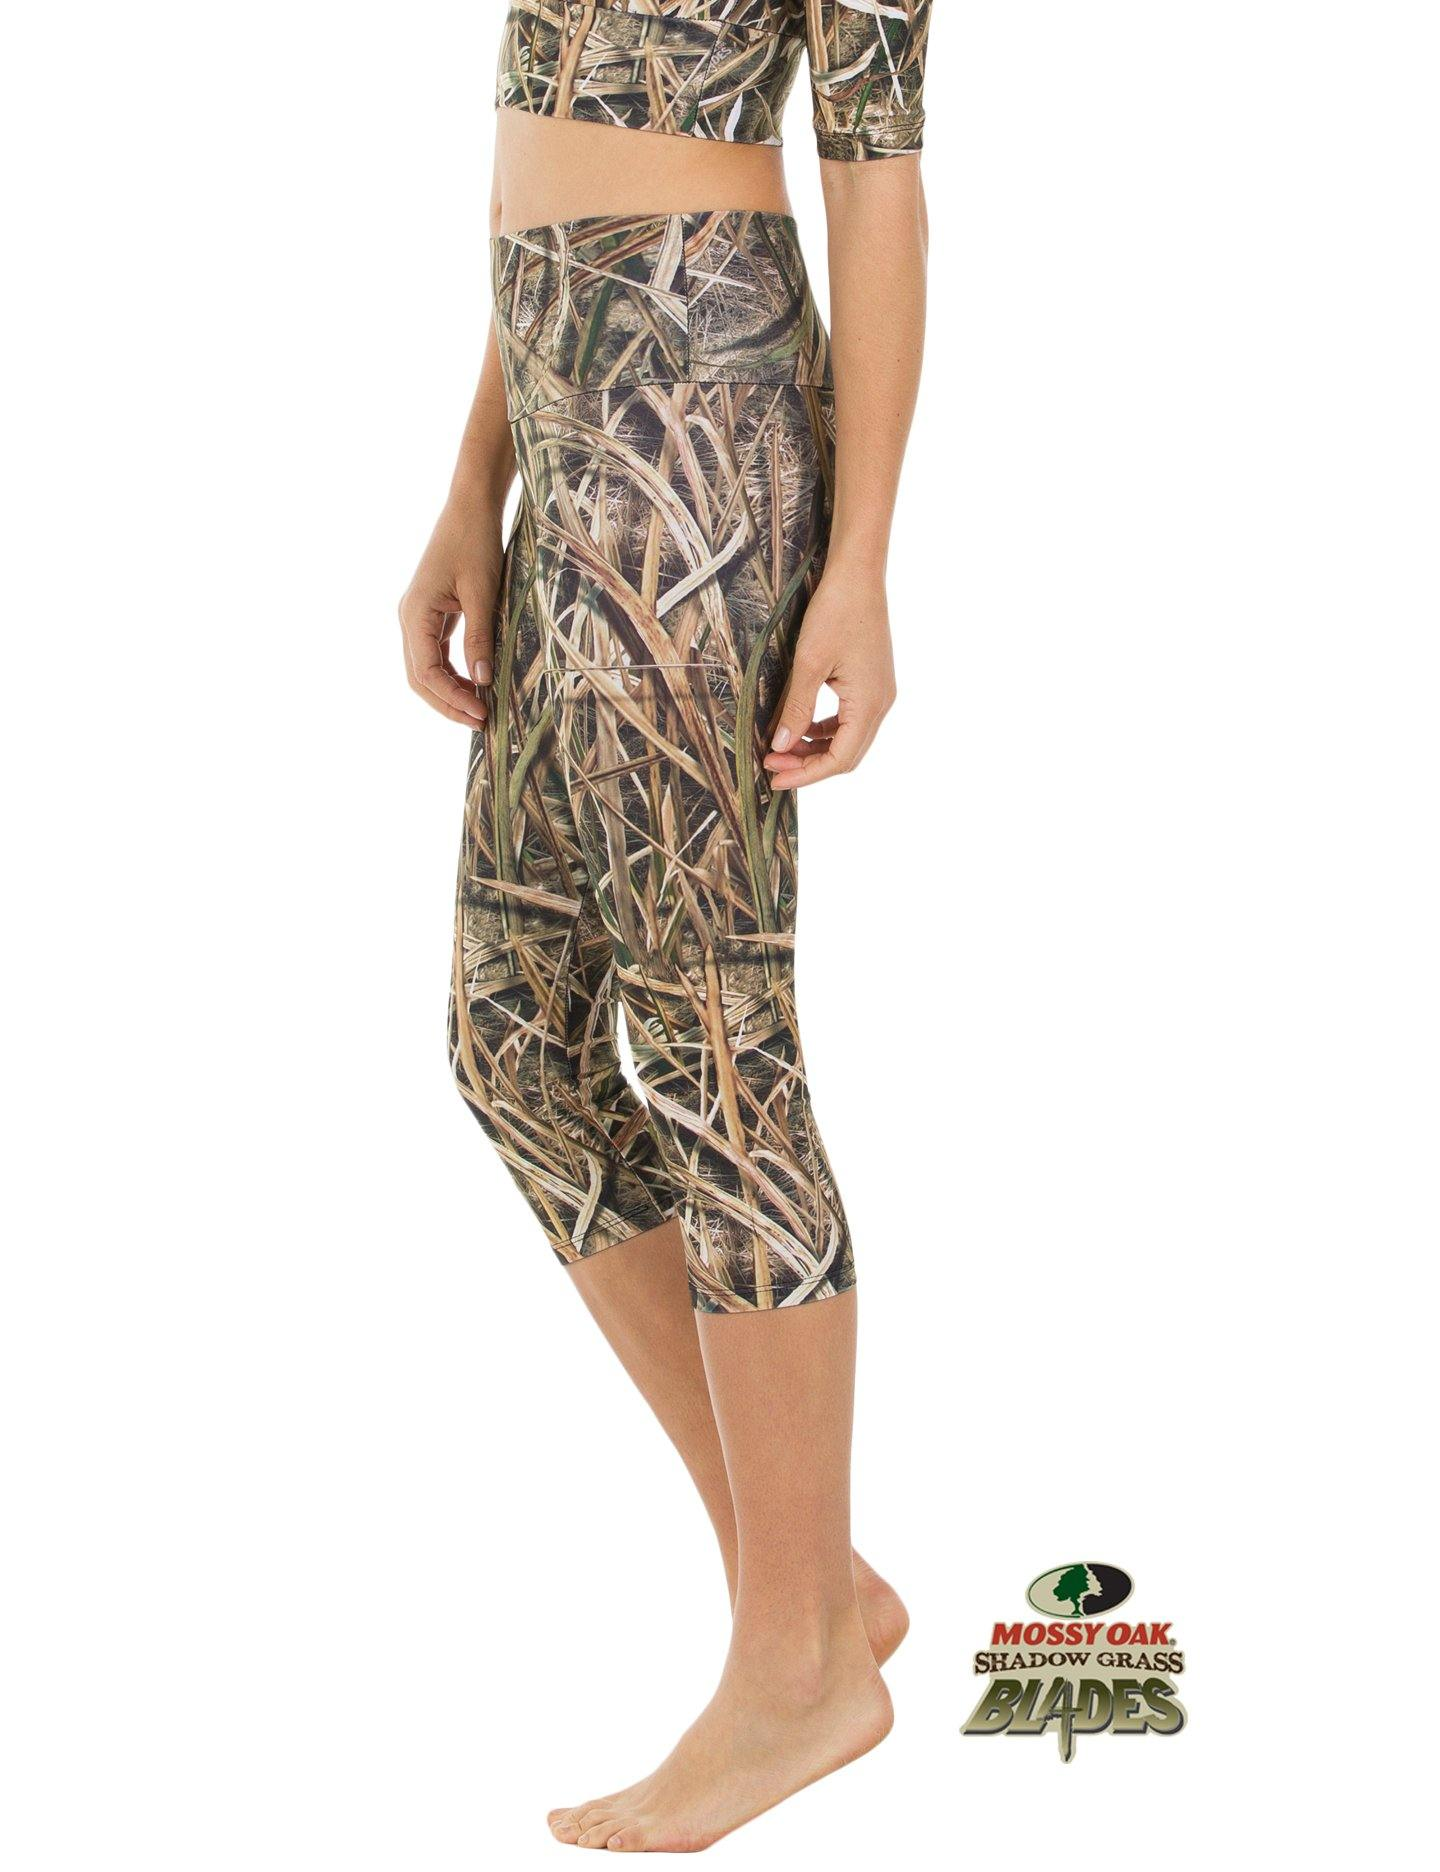 Apsara Leggings High Waist Capri, Mossy Oak Shadow Grass Blades